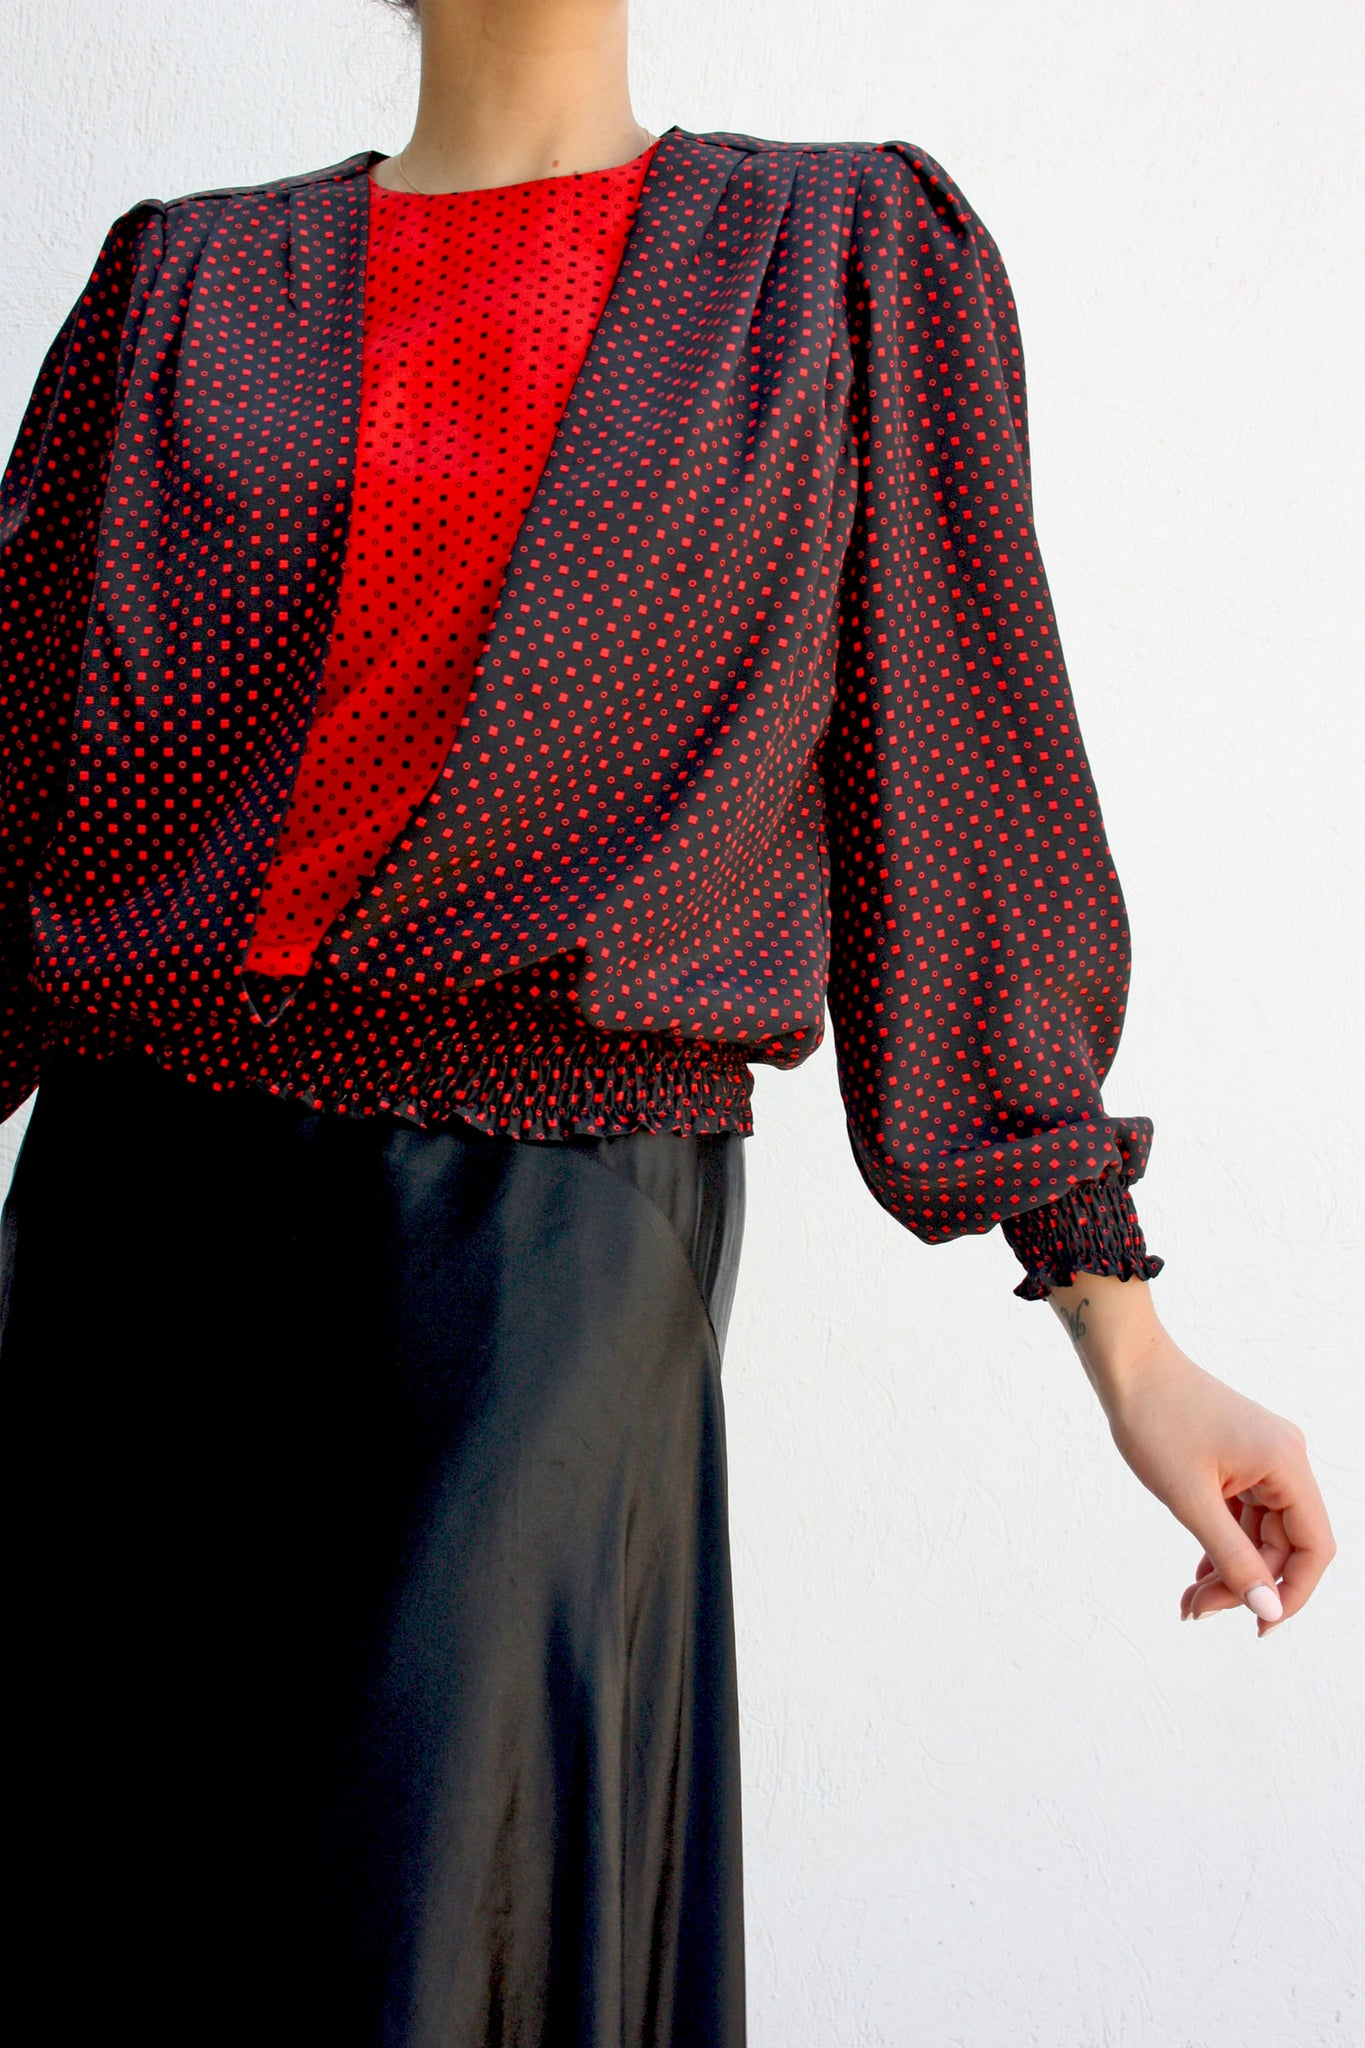 80's fashion vintage blouse - Shop SoLovesVintage